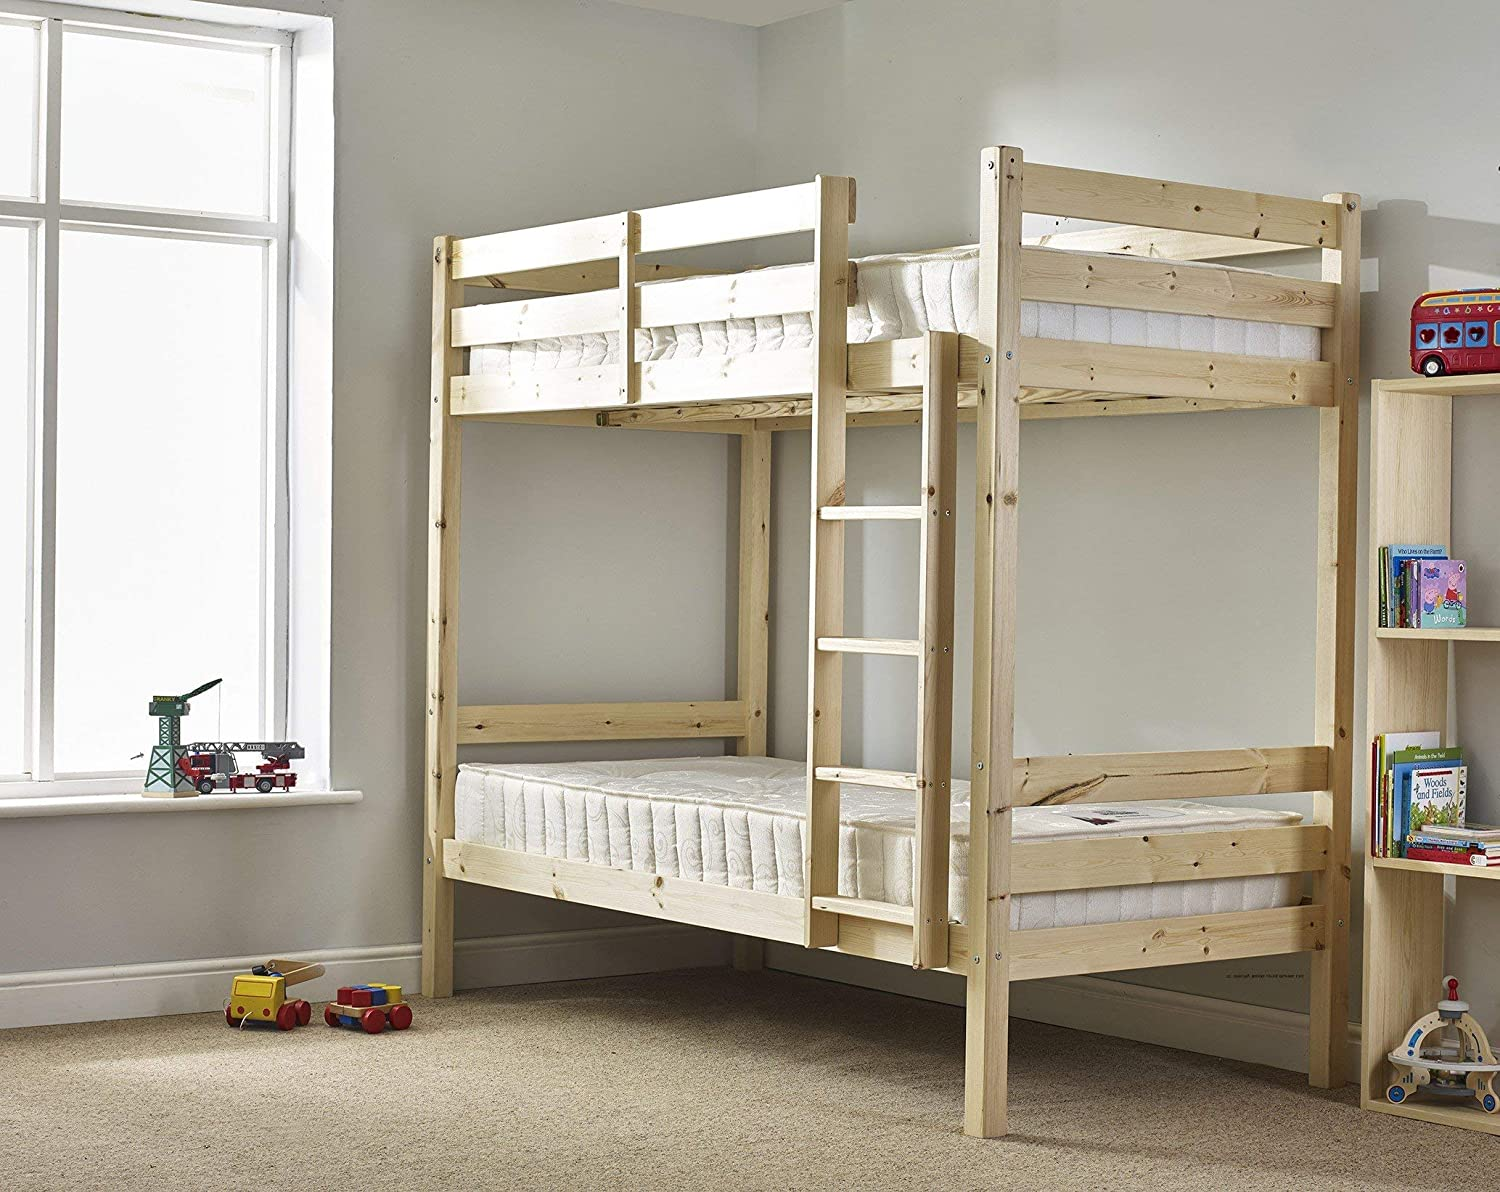 Amazon.com: Pine Bunk bed - 3ft single bunk beds - heavy duty, can ...